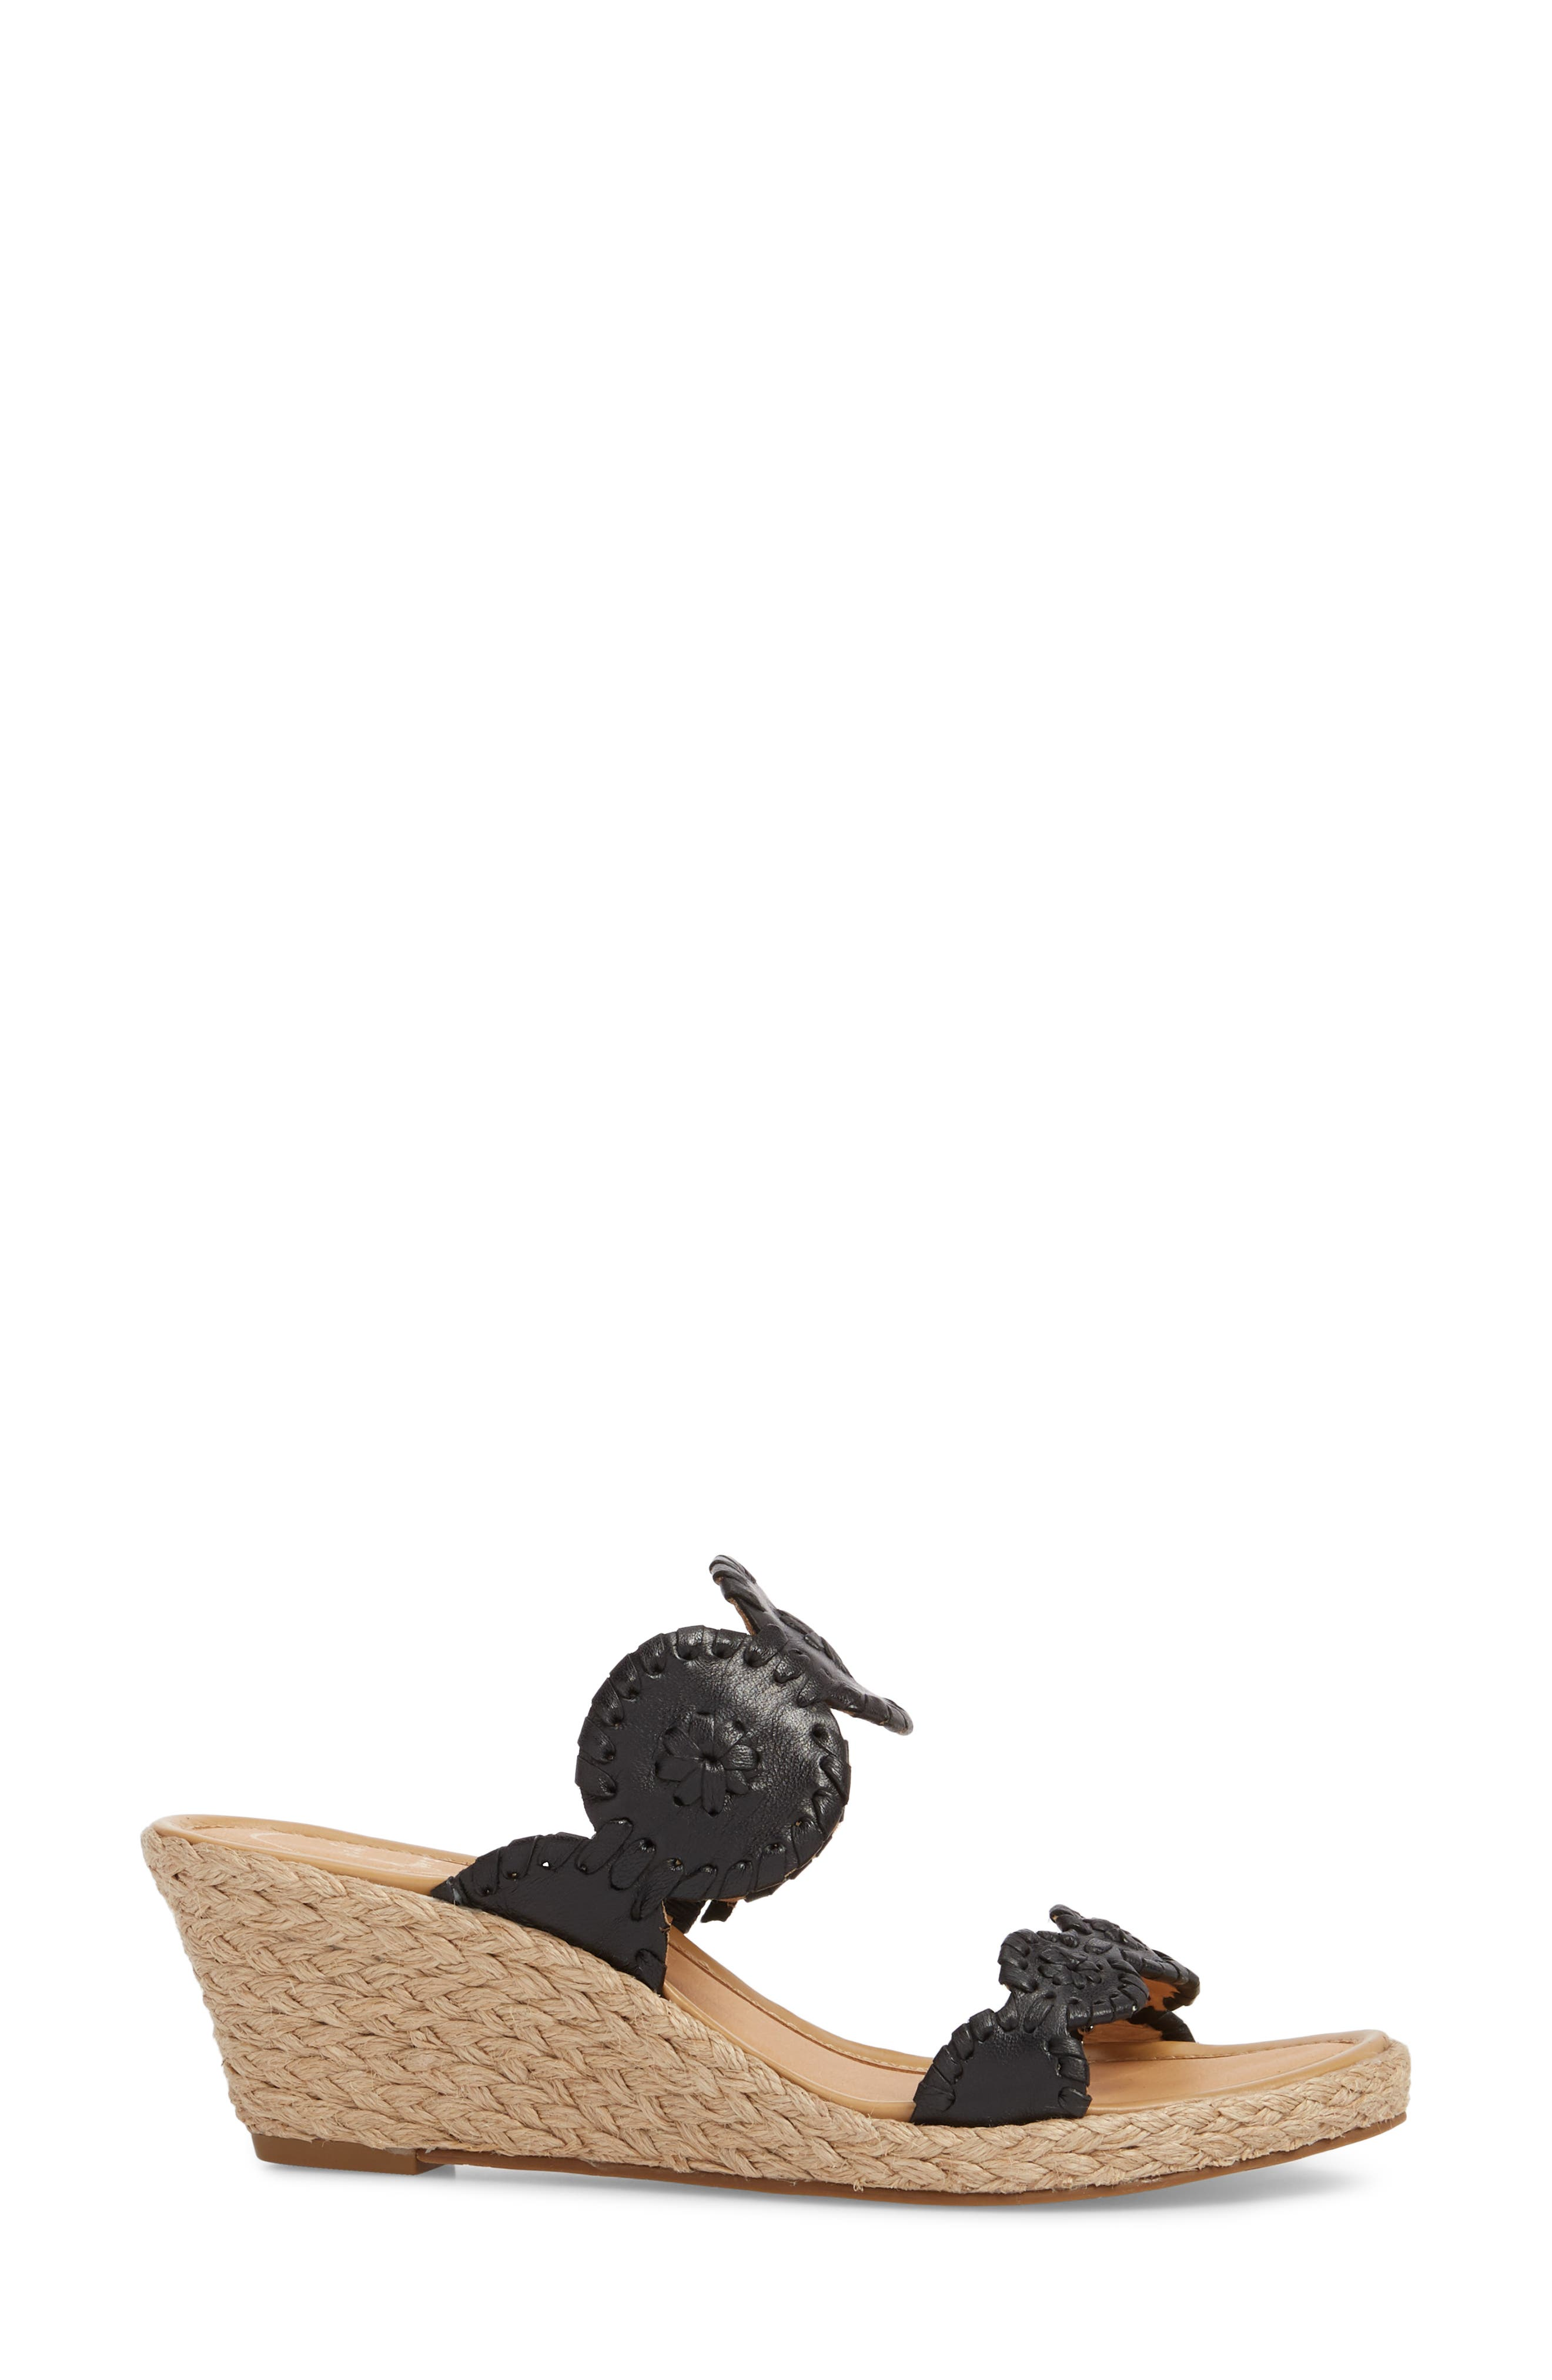 JACK ROGERS, 'Shelby' Whipstitched Wedge Sandal, Alternate thumbnail 3, color, 001